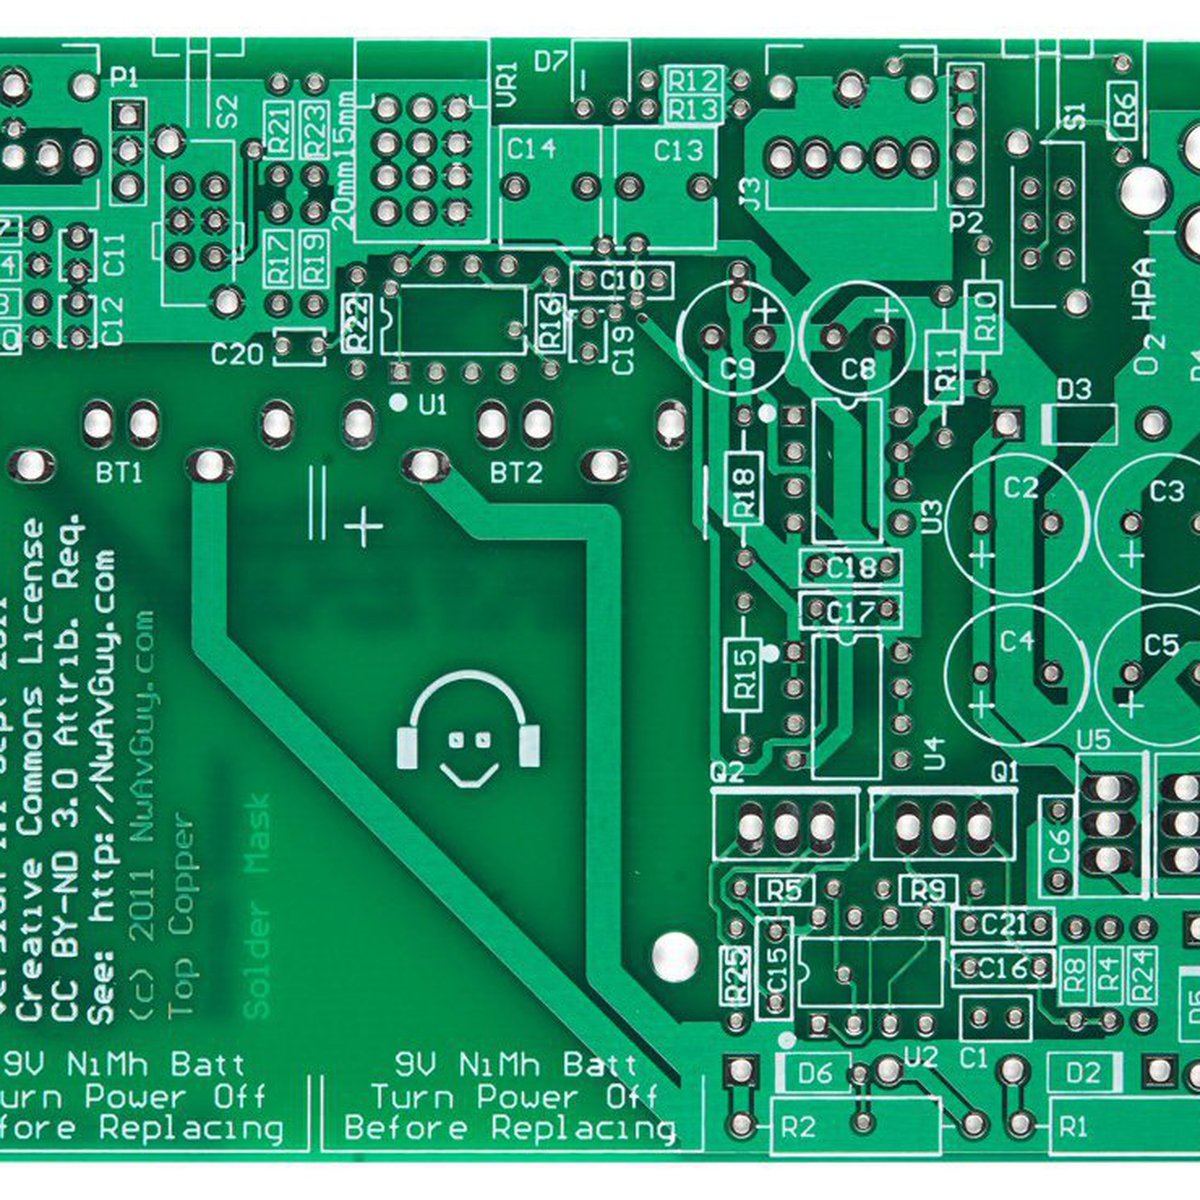 Objective2 O2 Headphone Amp Pcb From Sieger82 On Tindie What Is A Every Gadget And Electronics Enthusiast Should